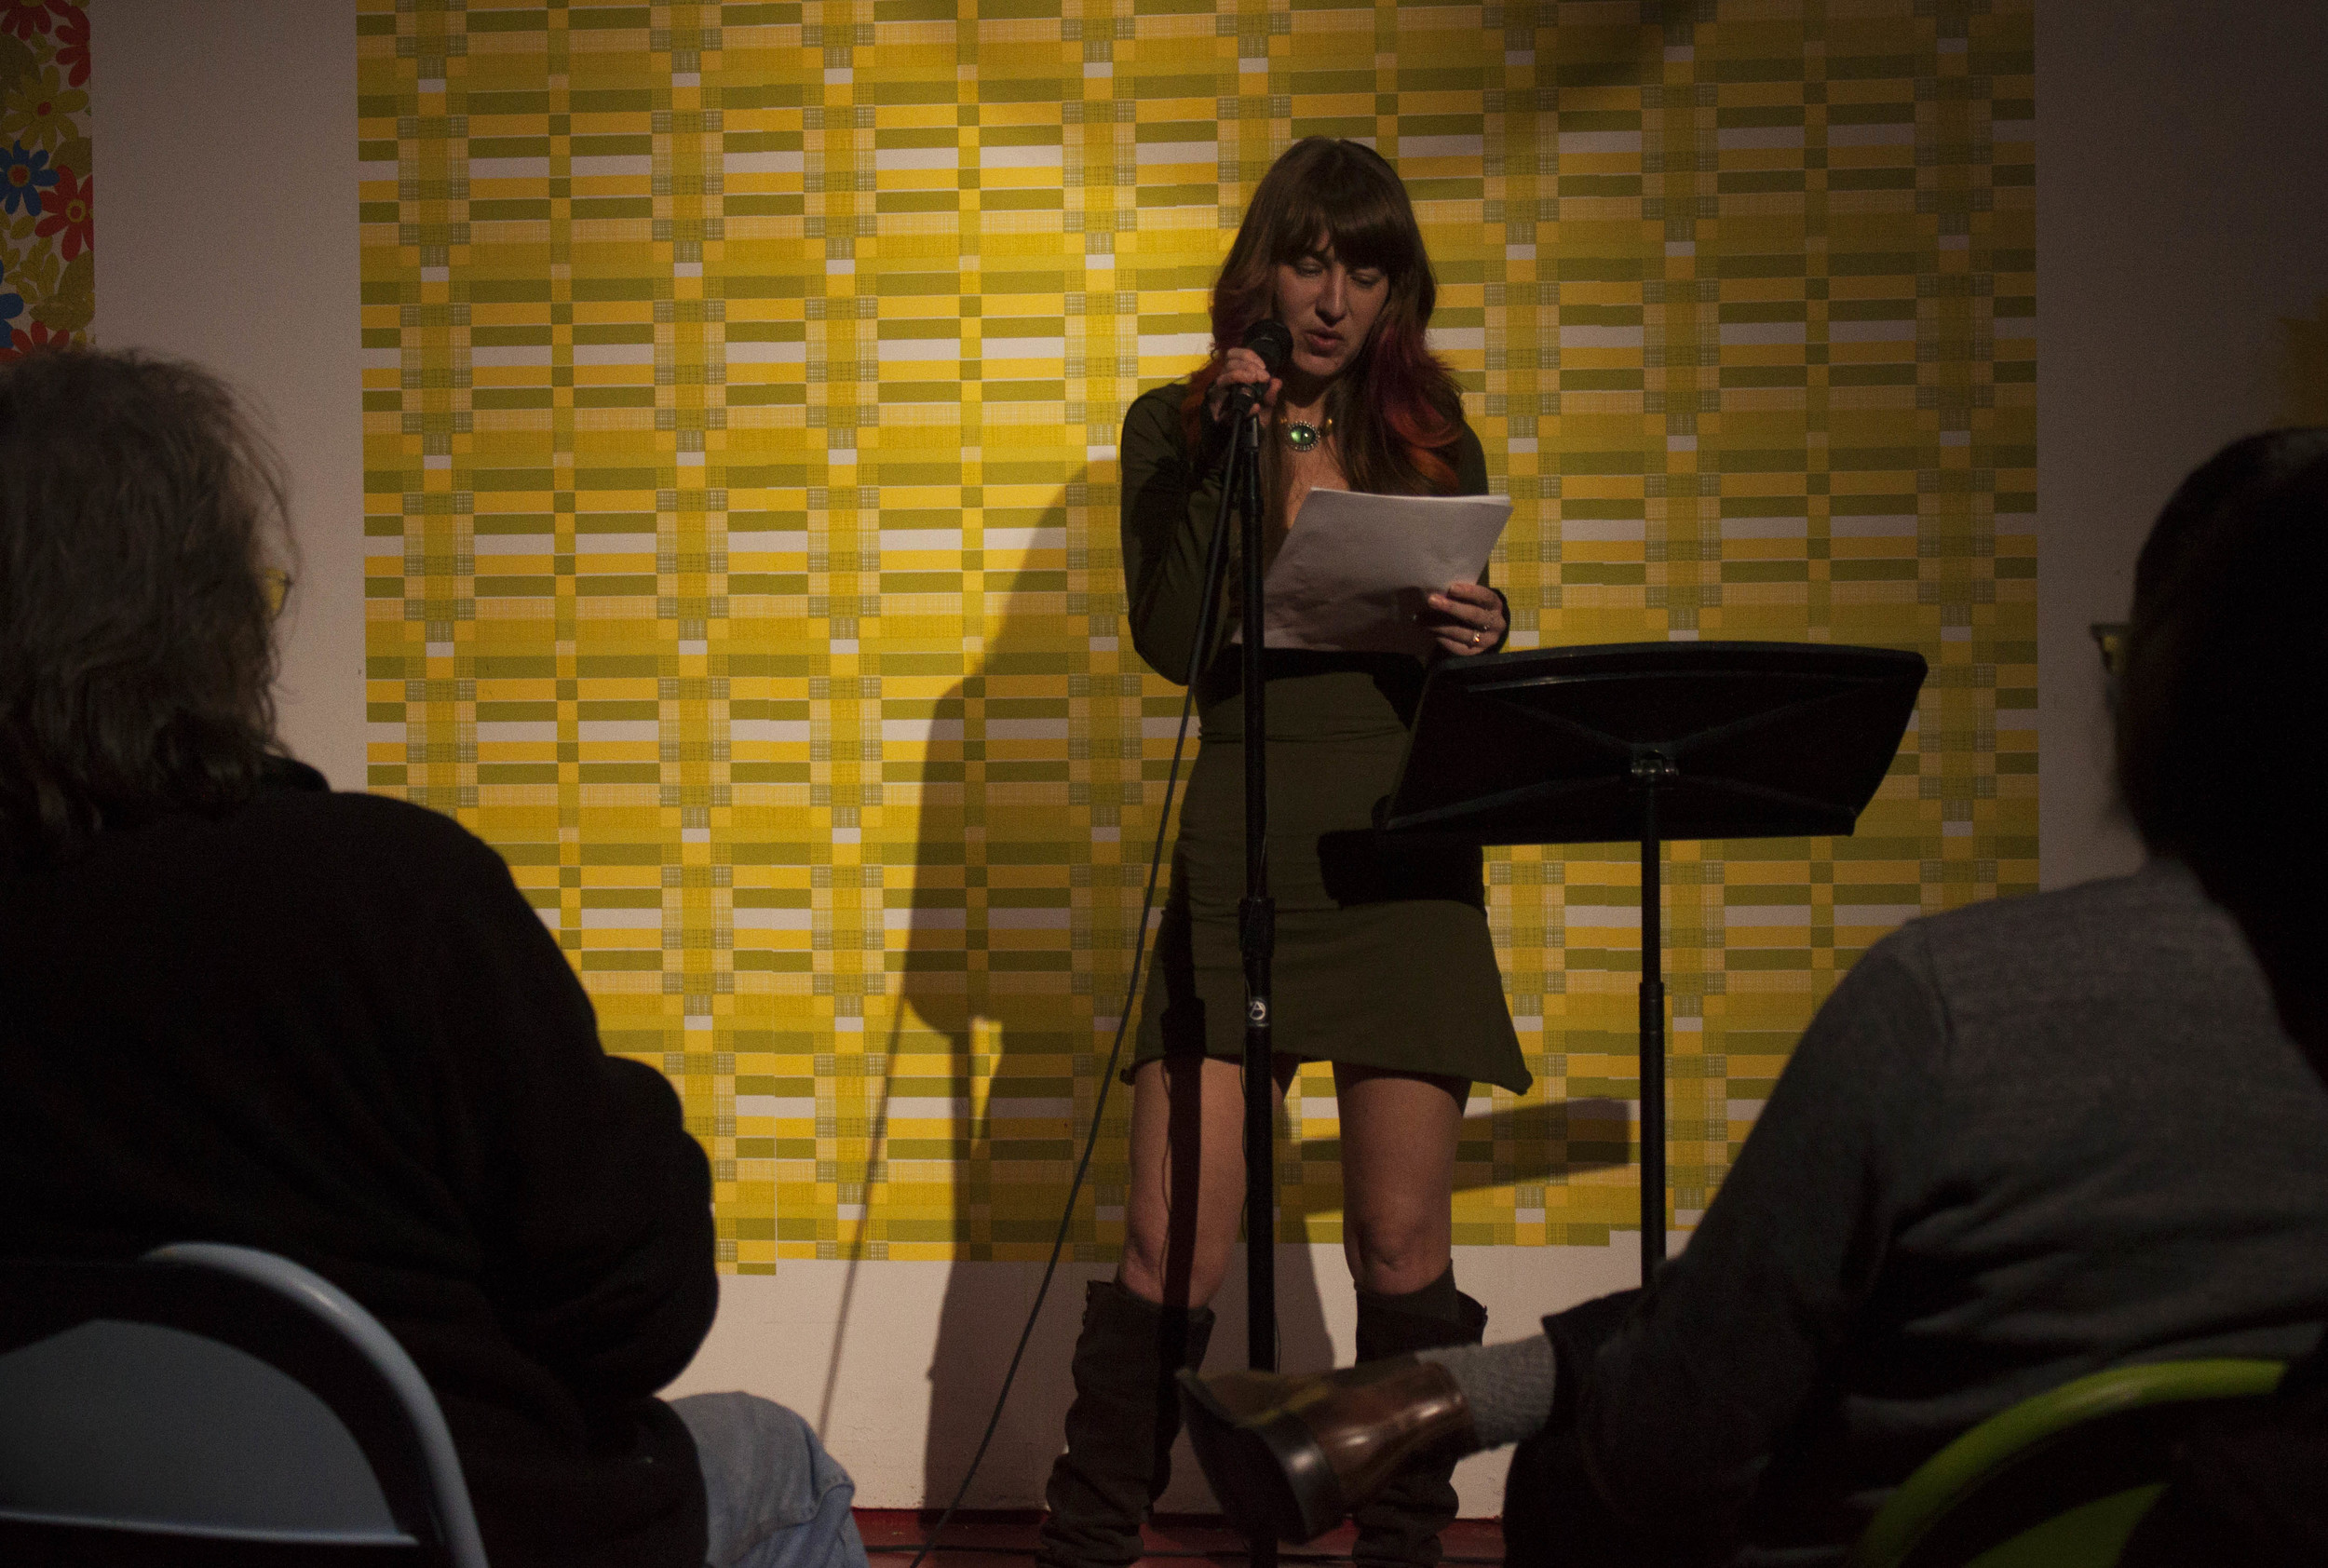 Chloe Evans O'Hearn presents her monologue at Memphis Monologues (February 7, 2015)